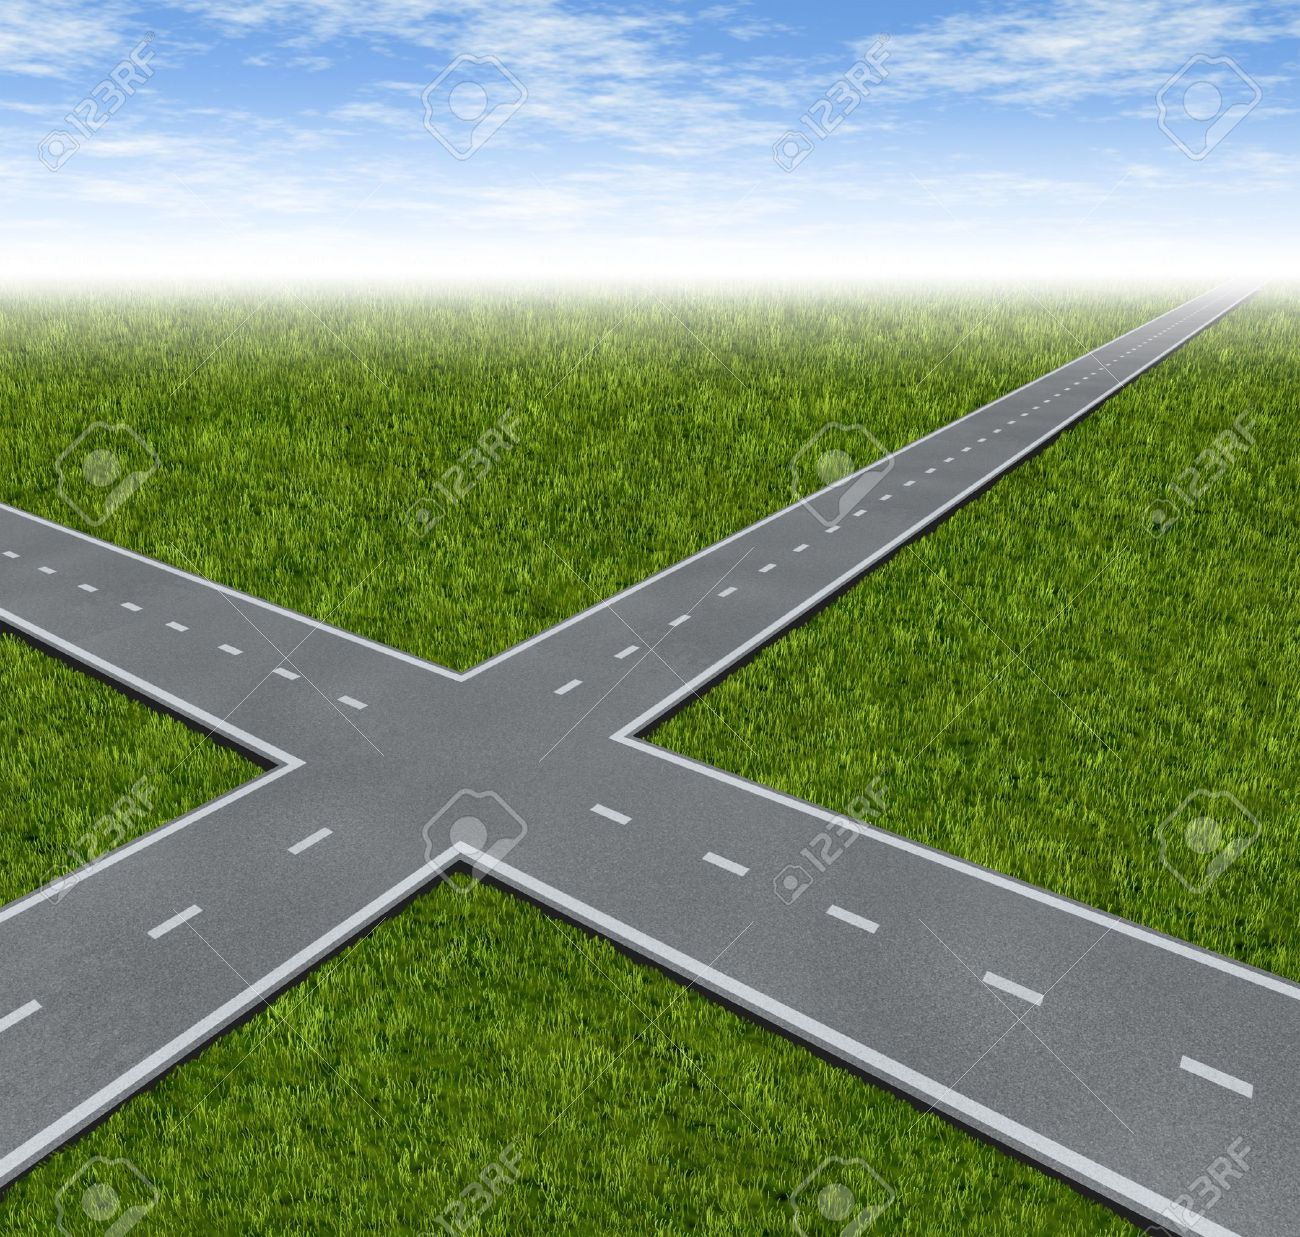 Crossroad Decision Dilemma with two roads crossing as a business symbol of facing difficult financial choices deciding to choose the best path to success and wealth on a green grass summer landscape with a sky Stock Photo - 13203567